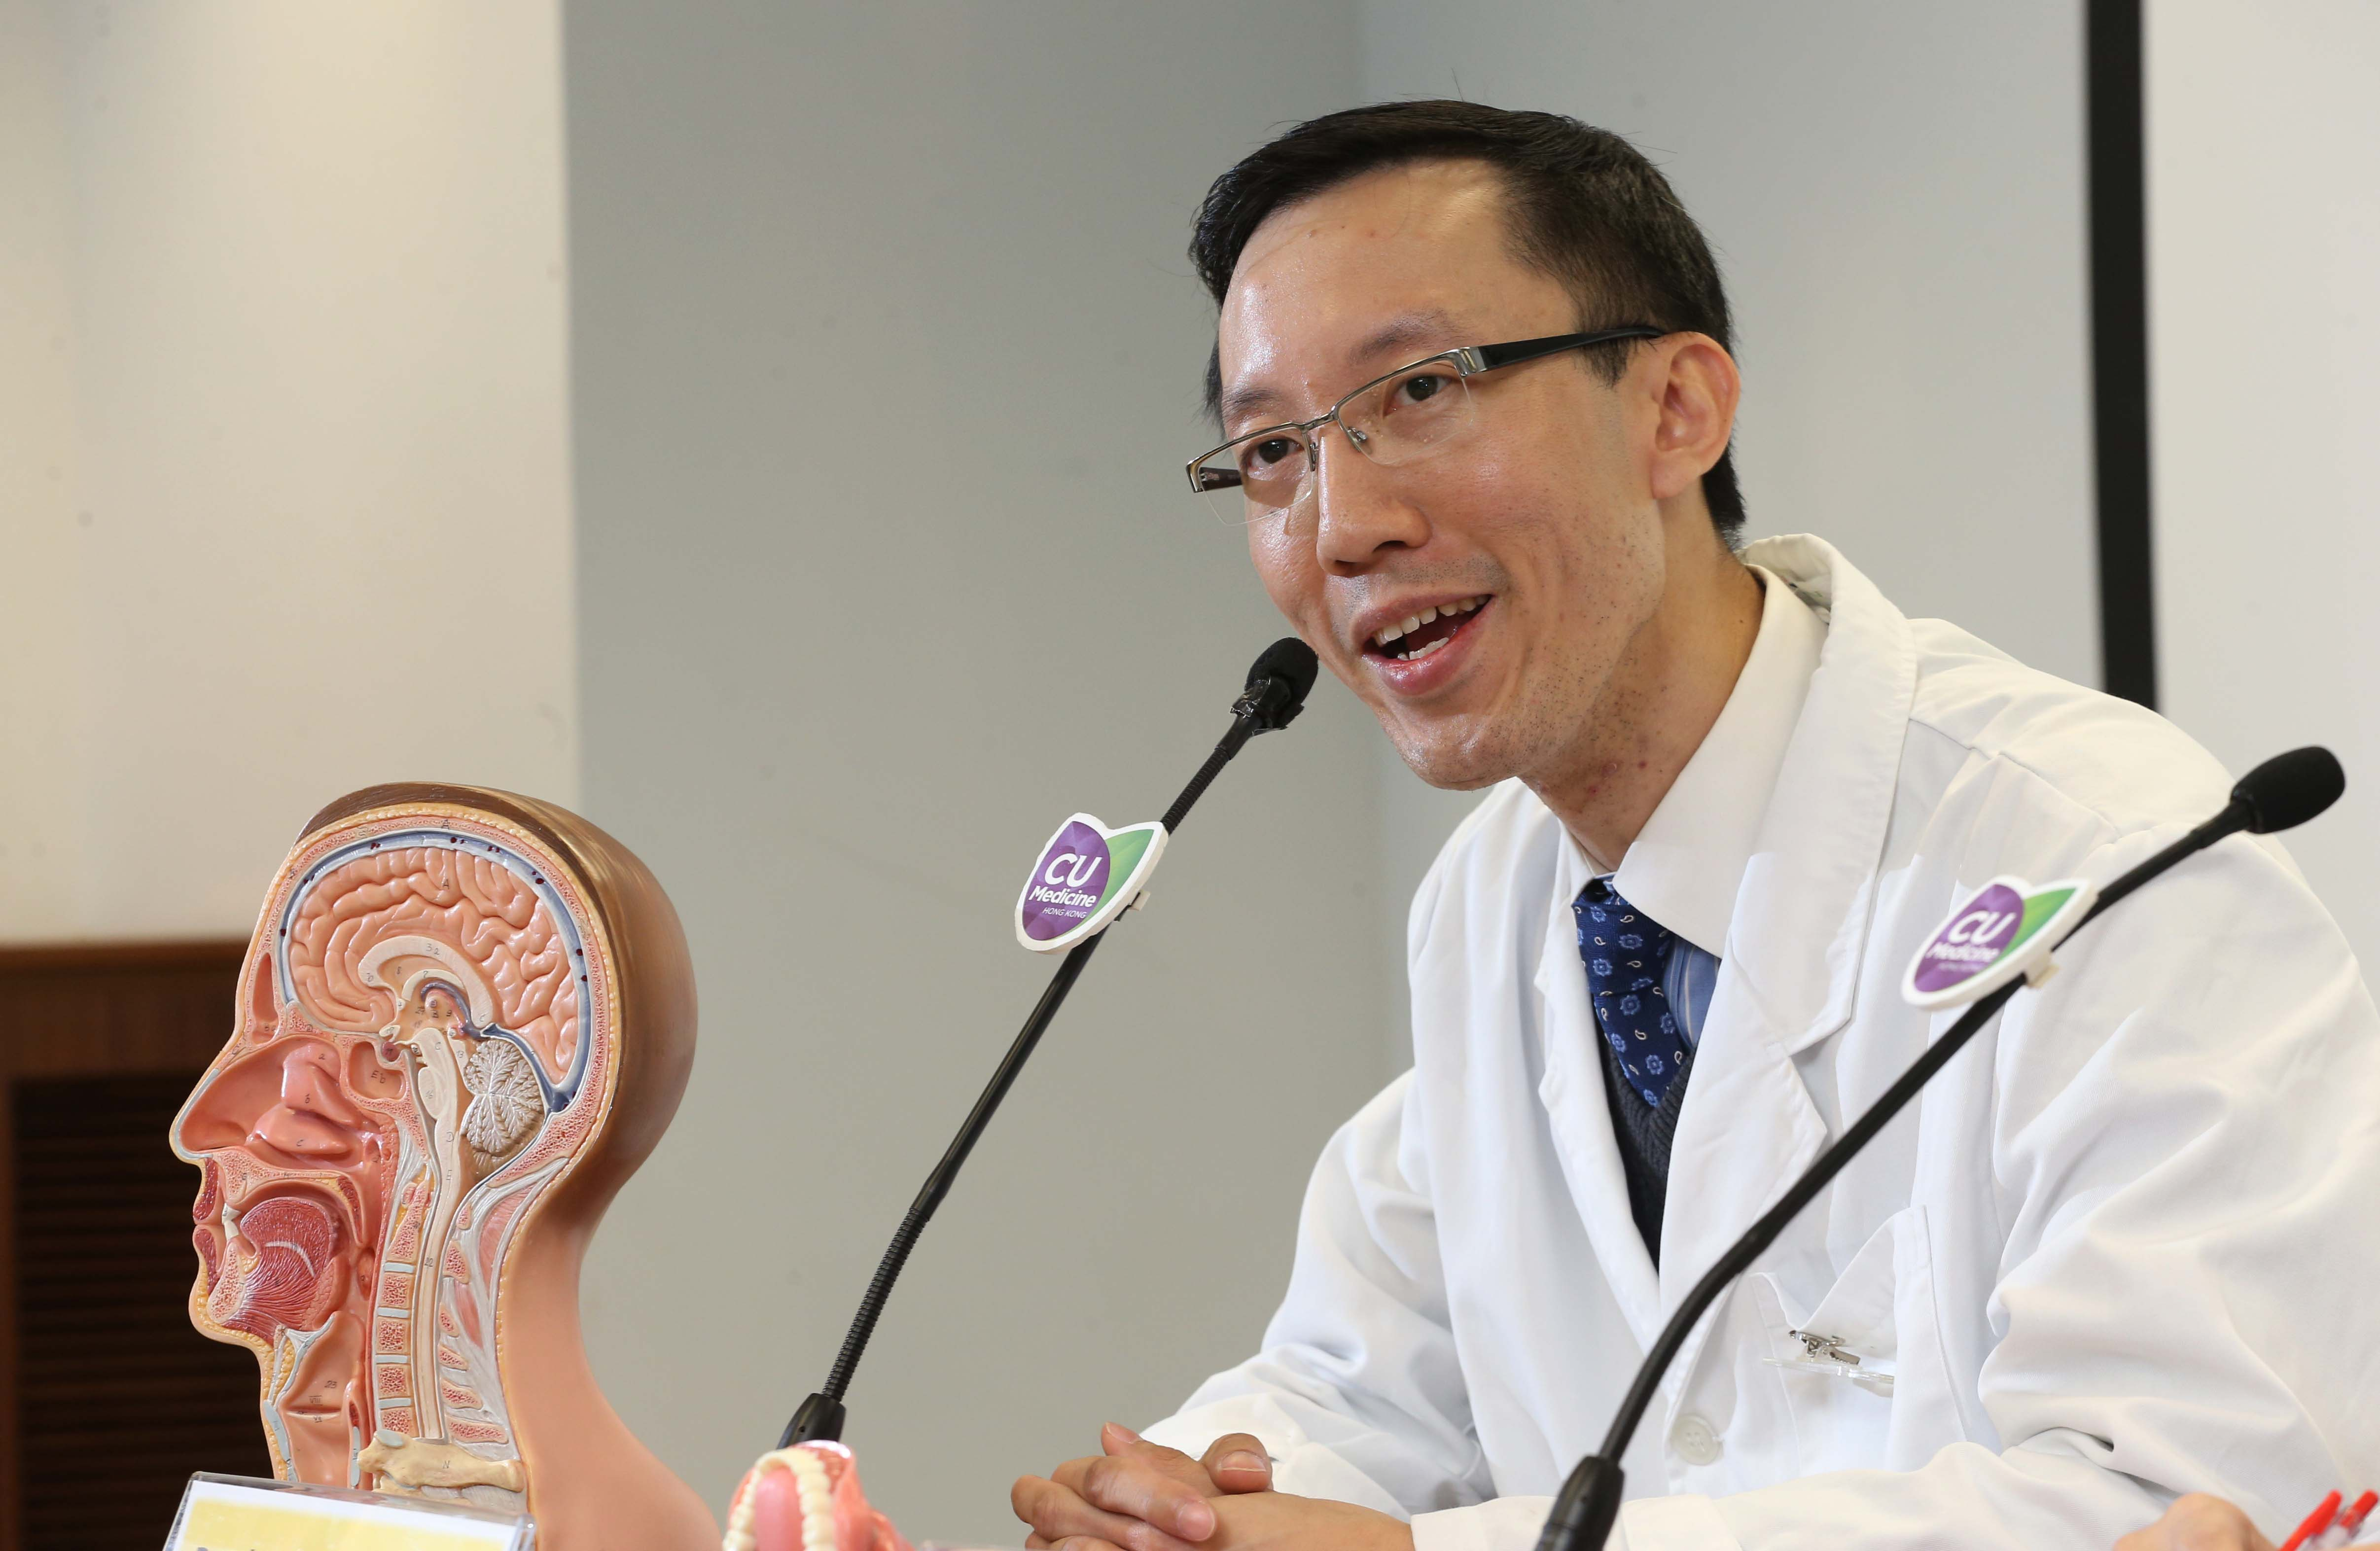 Dr. Eddy LAM, Honorary Clinical Assistant Professor